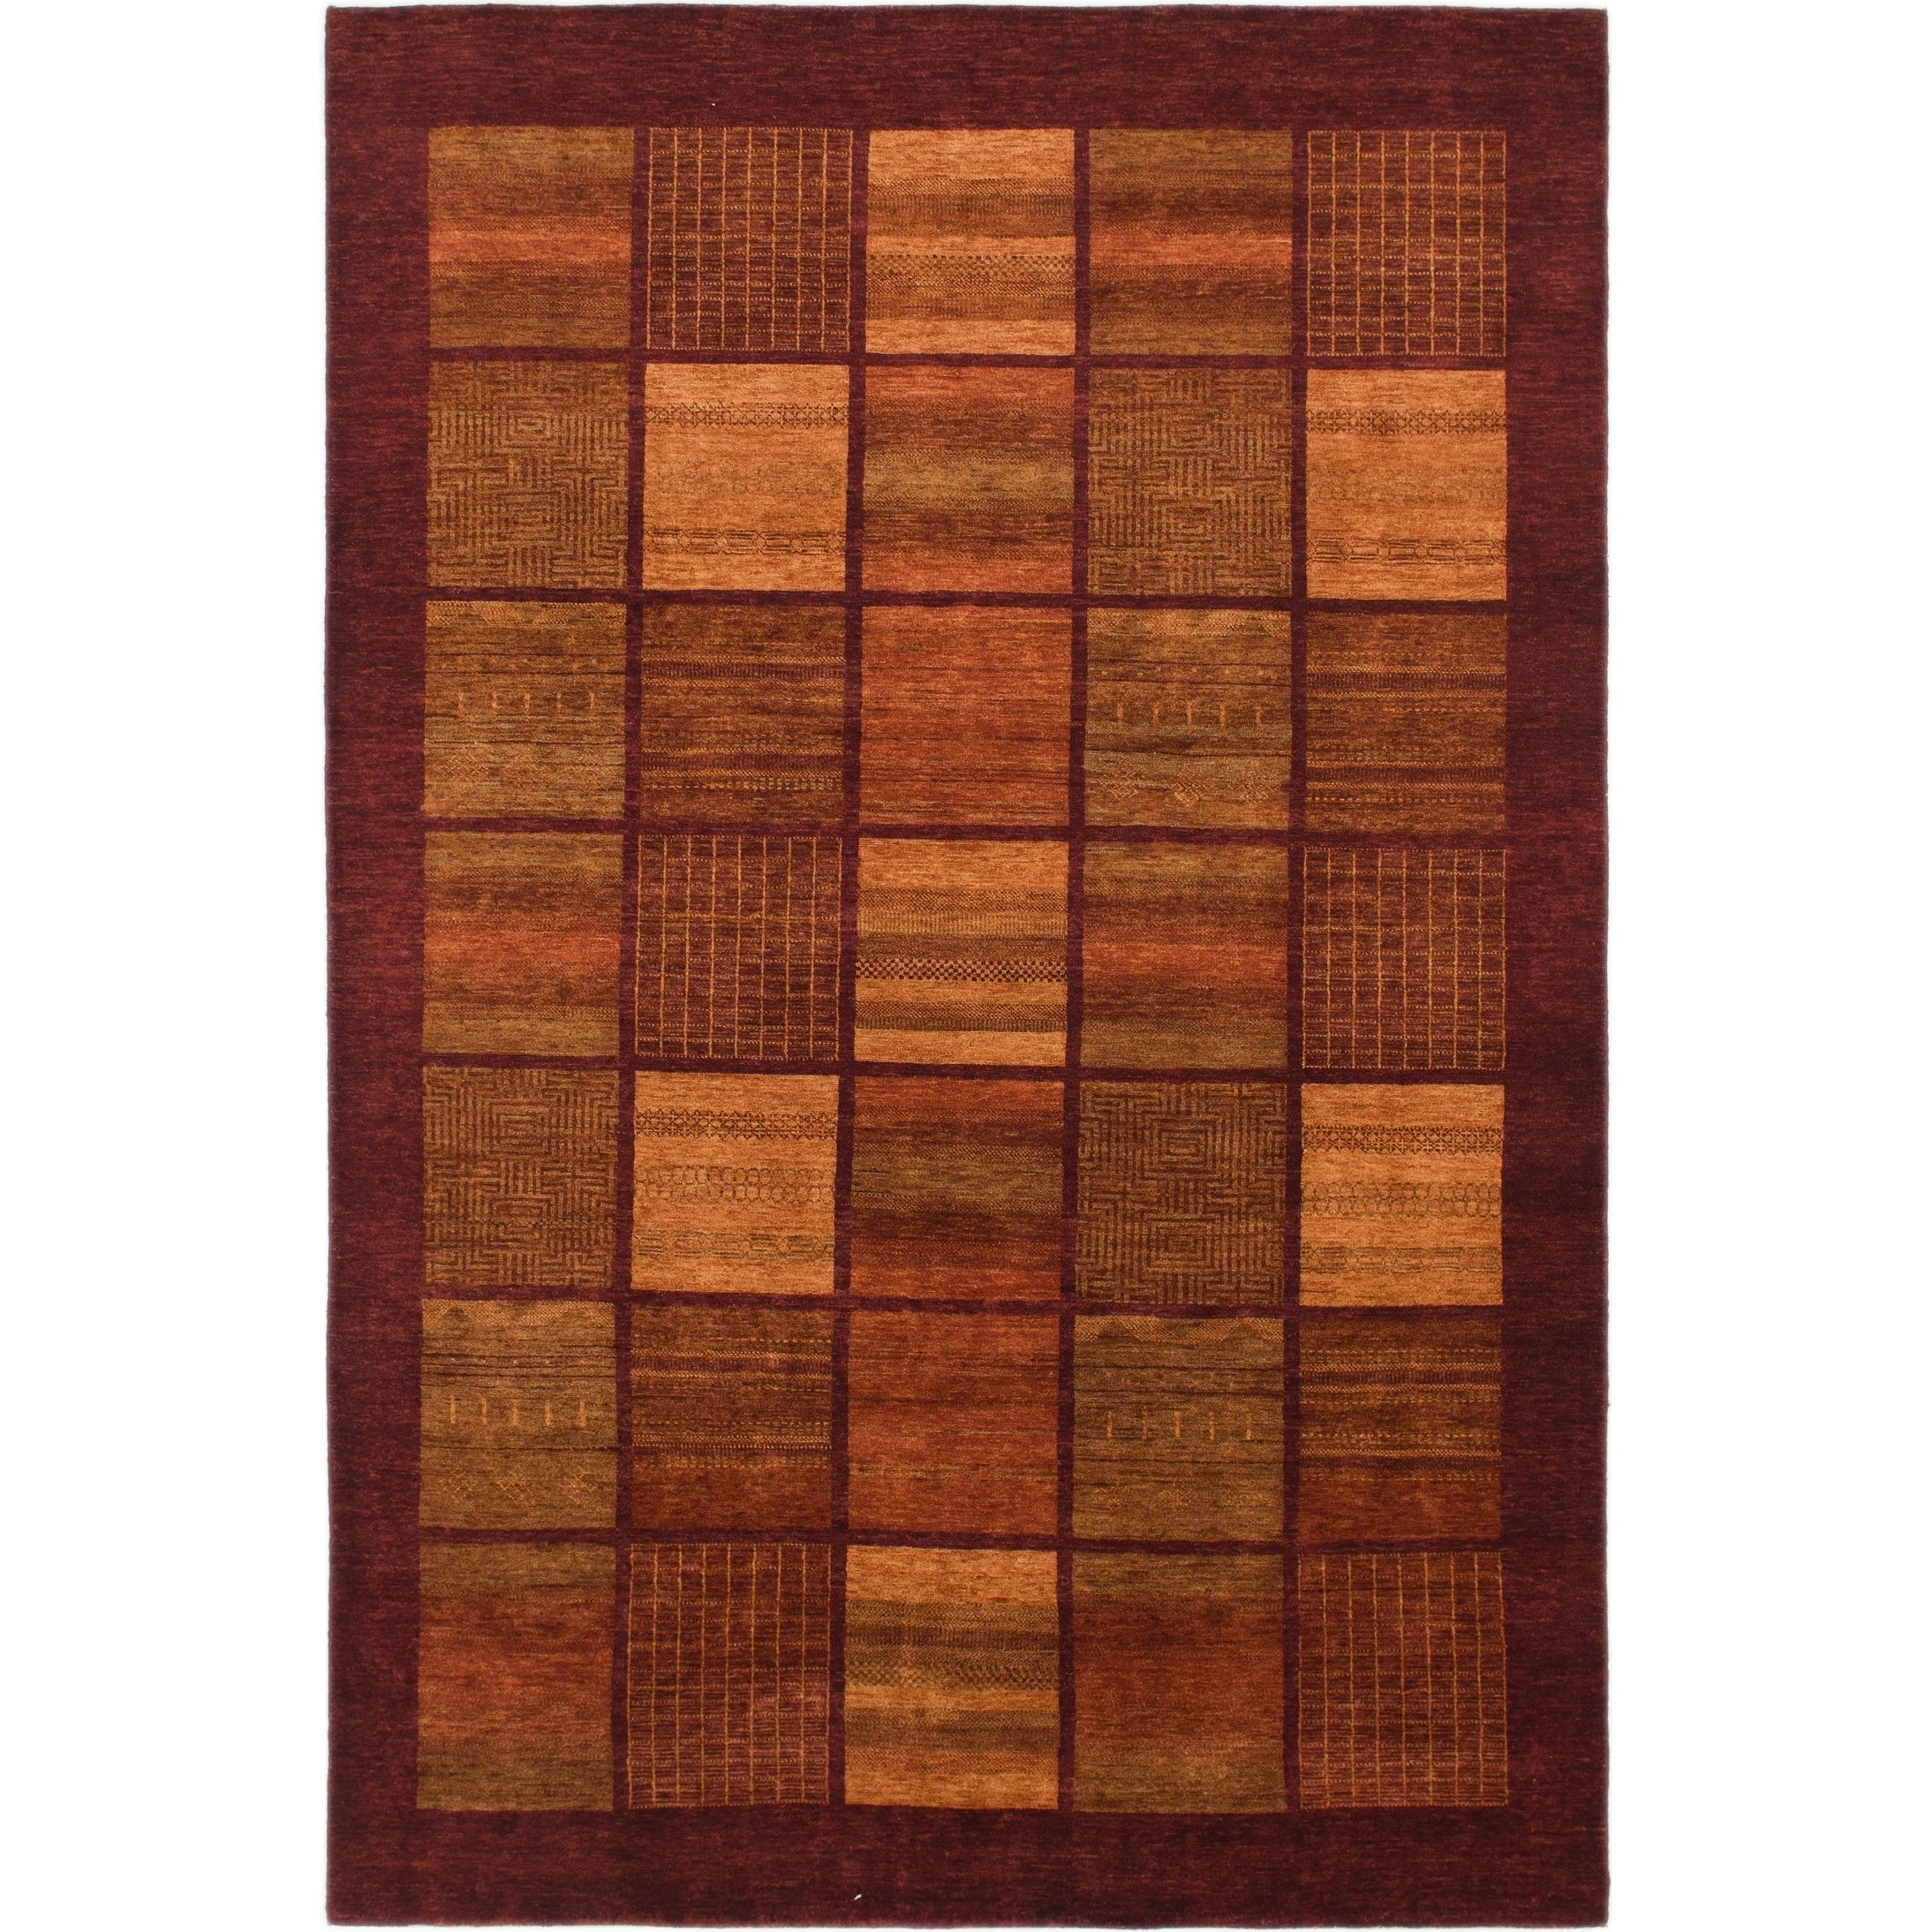 Hand Knotted Kashkuli Gabbeh Wool Area Rug - 6 7 x 9 10 (Red - 6 7 x 9 10)